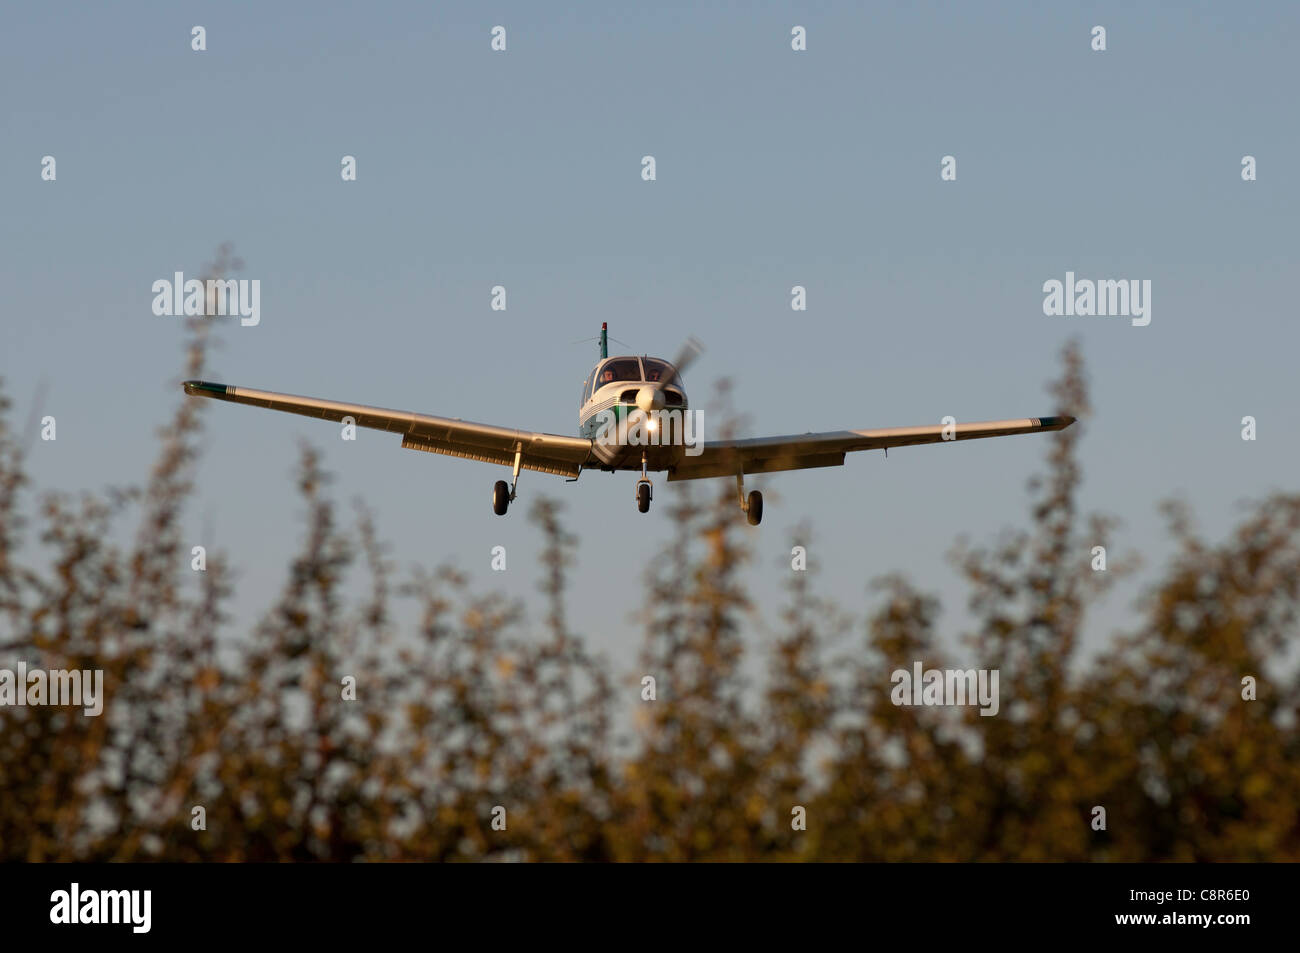 Low flying light aircraft - Stock Image